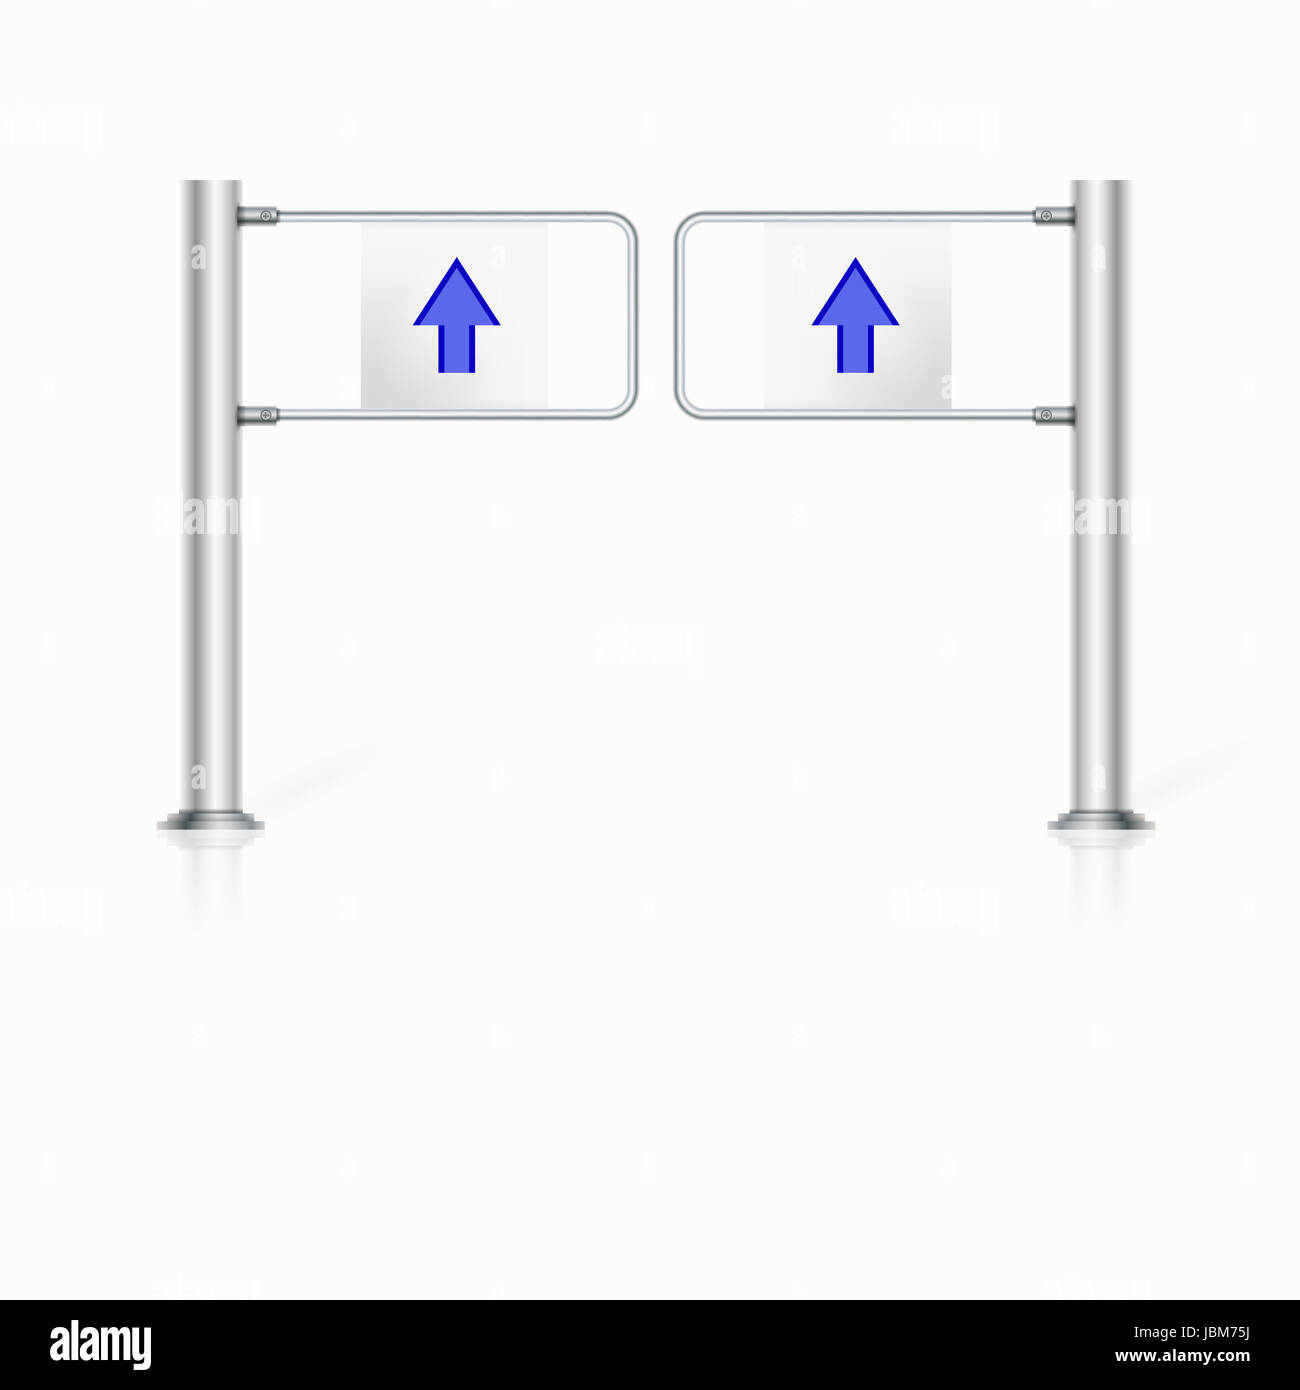 Steel turnstile with two blue arrows. Isolated vector illustration on white. Stock Photo